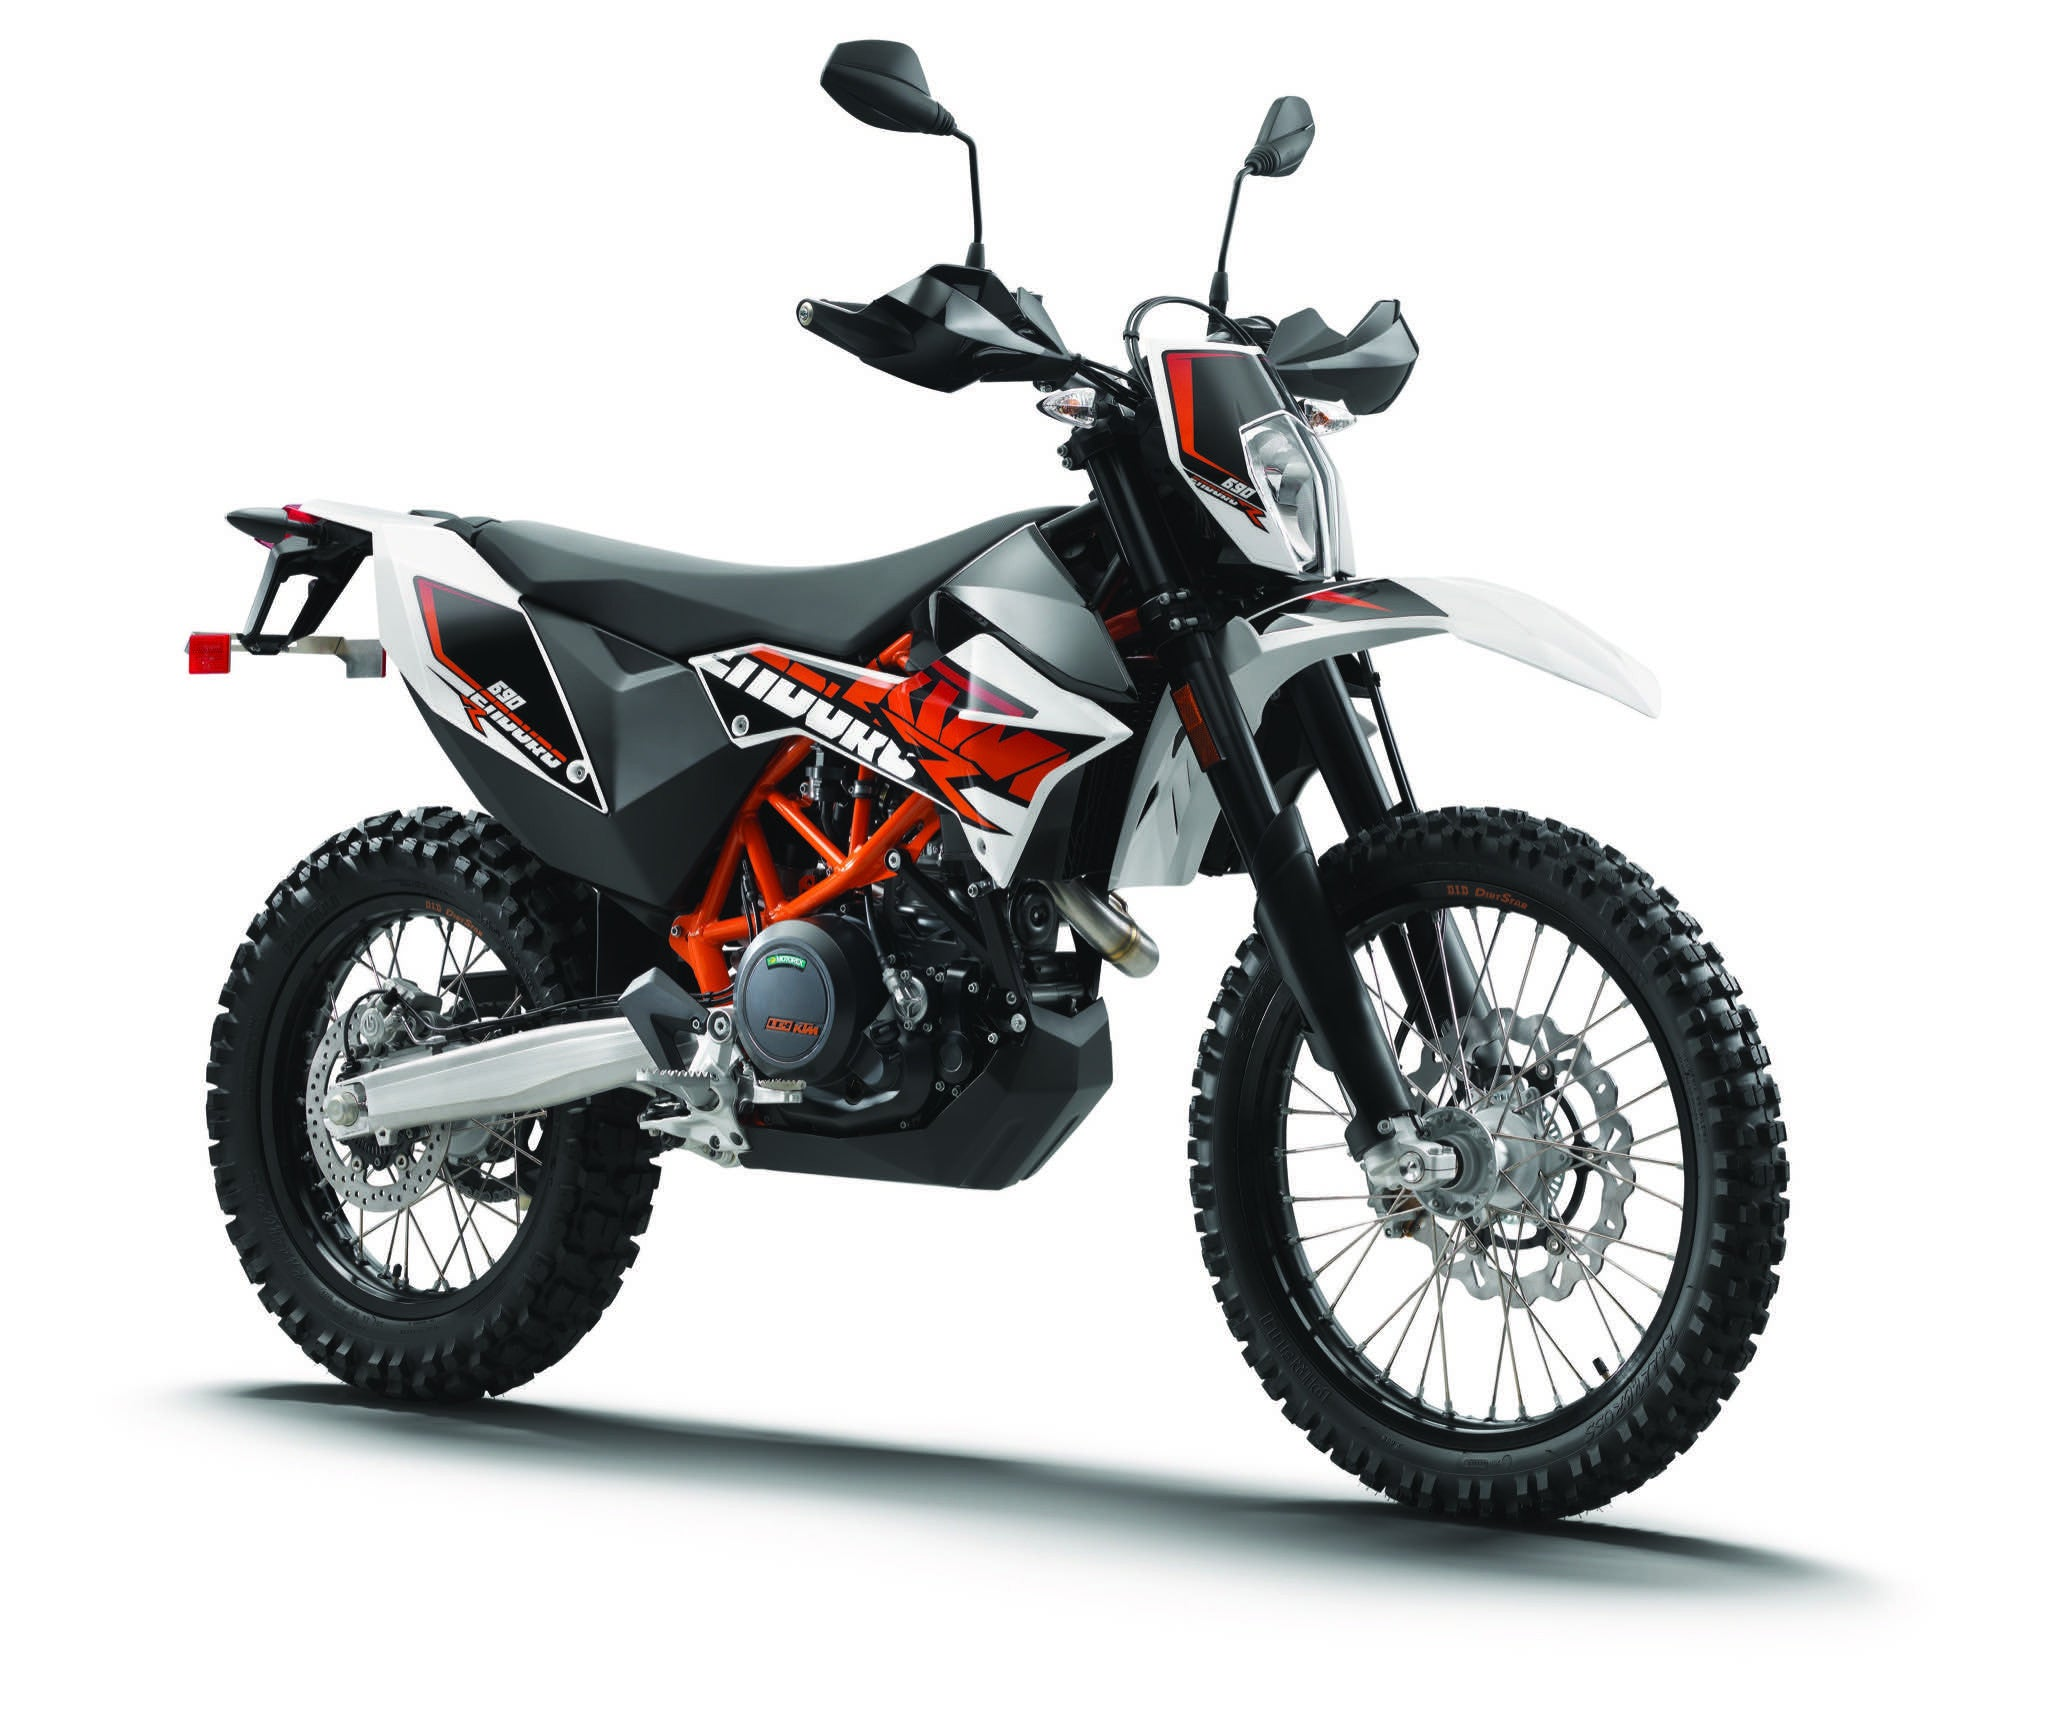 2018 ktm 690r.  ktm 2017 ktm 690 enduro r abs  motorcycle for sale central florida  powersports and 2018 ktm 690r e